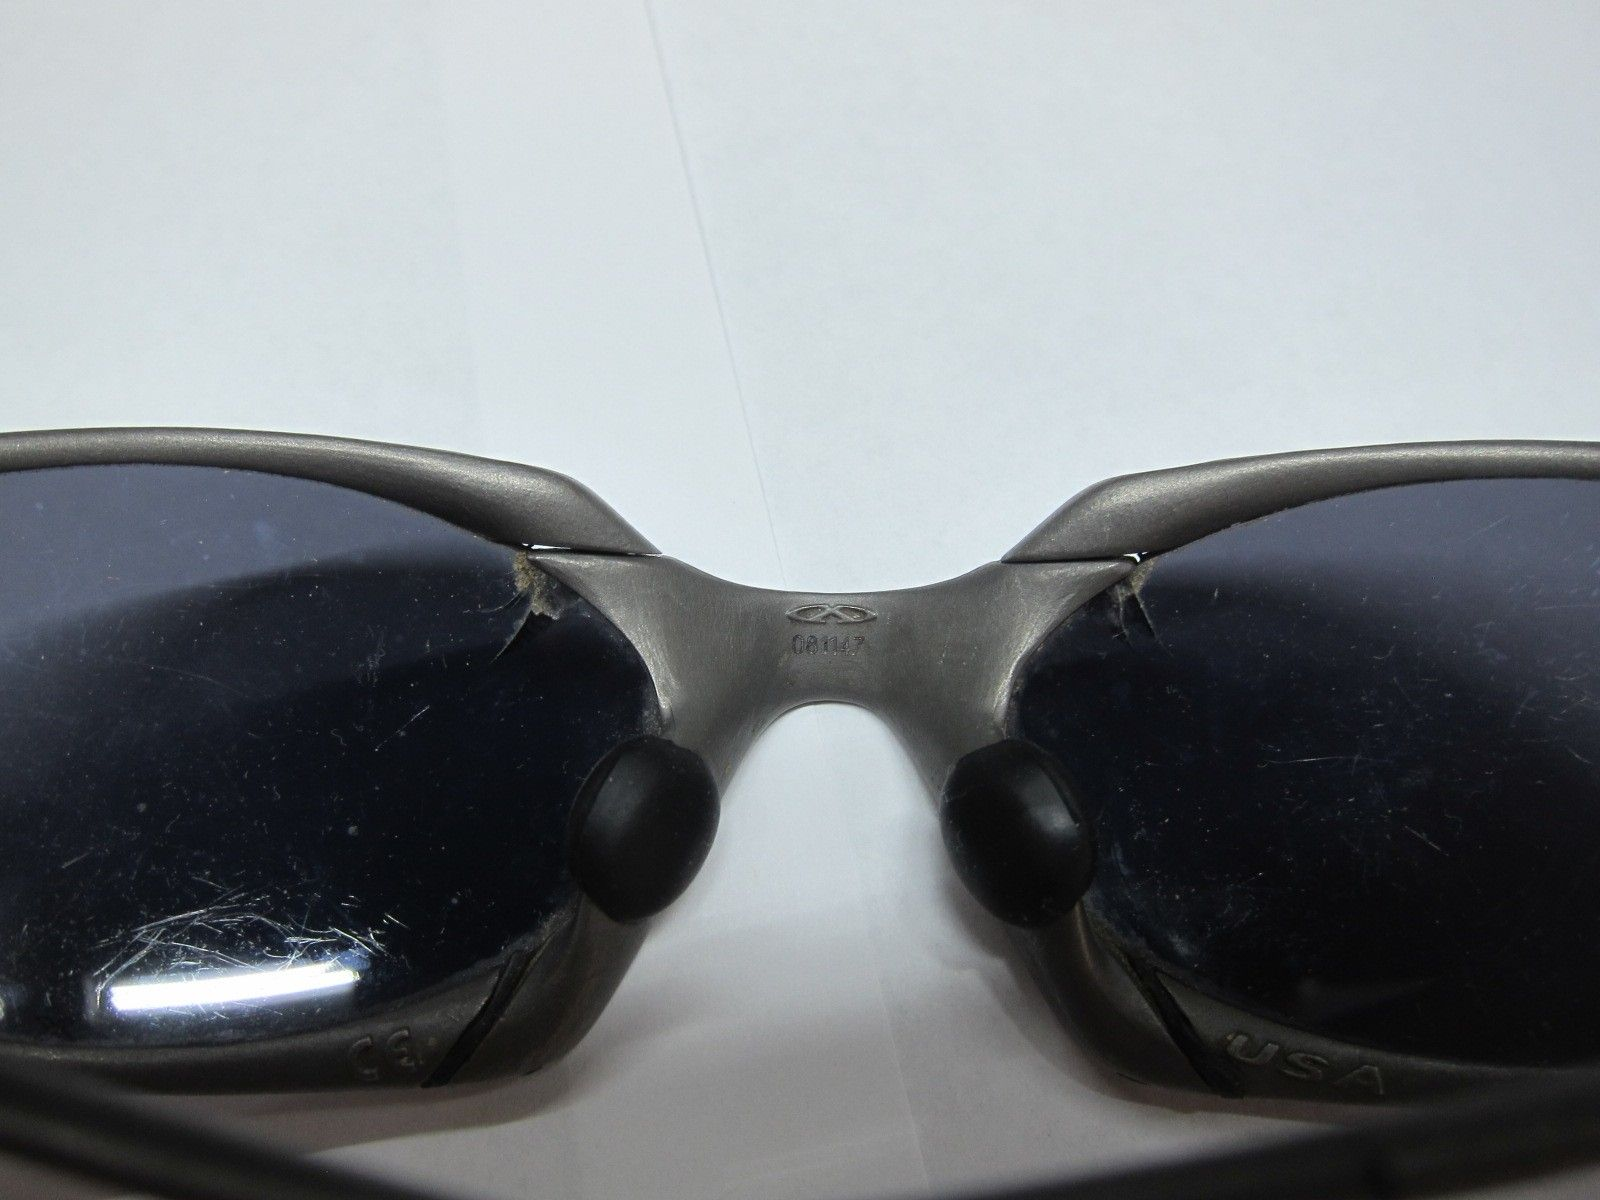 Oakley X-metal Romeo 1 Authentic? - oakleyromeo1-serial.JPG